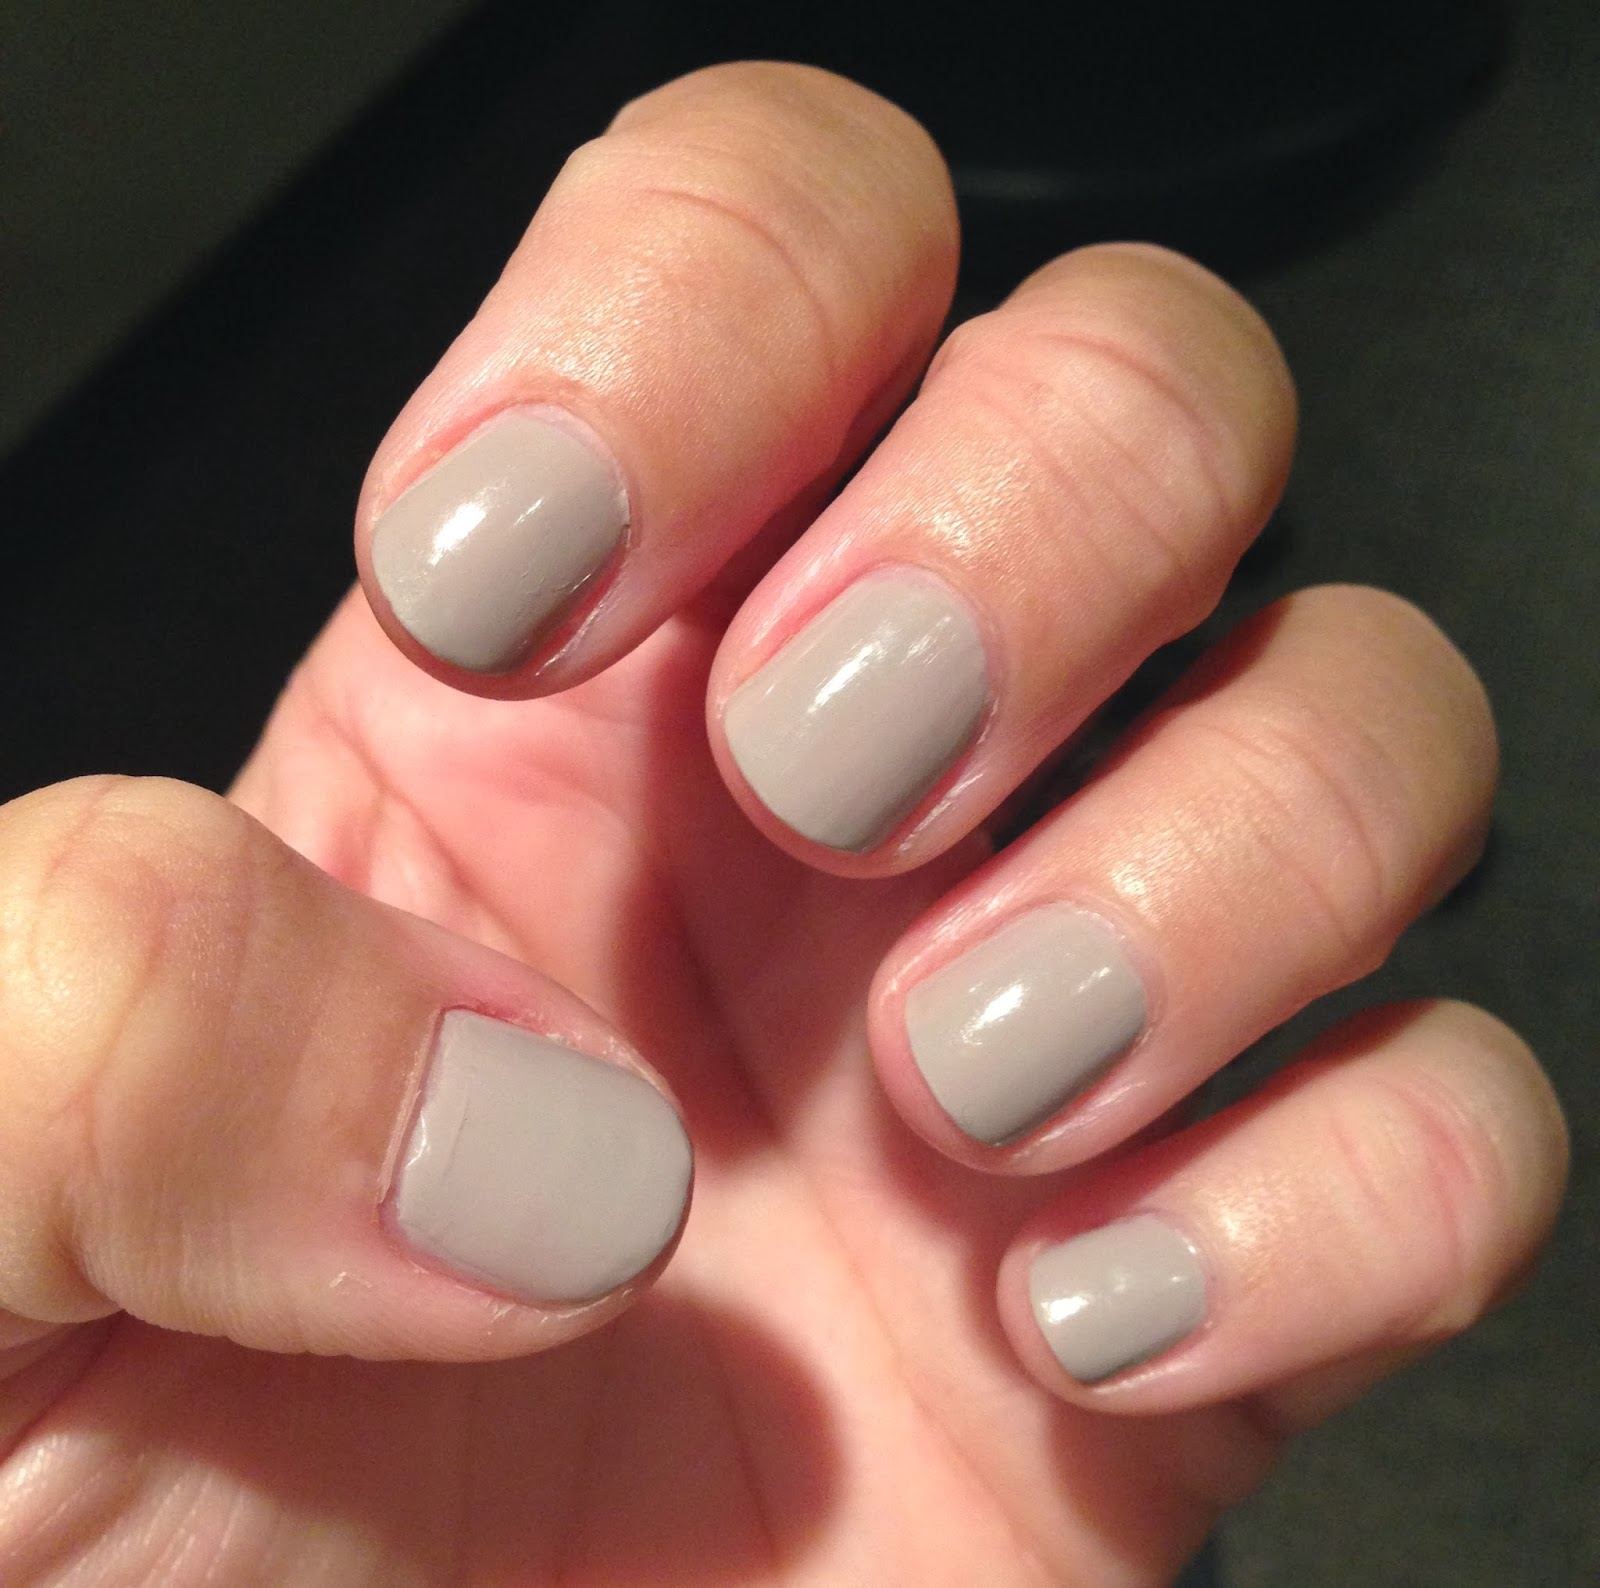 My Beauty Full Blog: Nails Inc Porchester Square Gel Effect